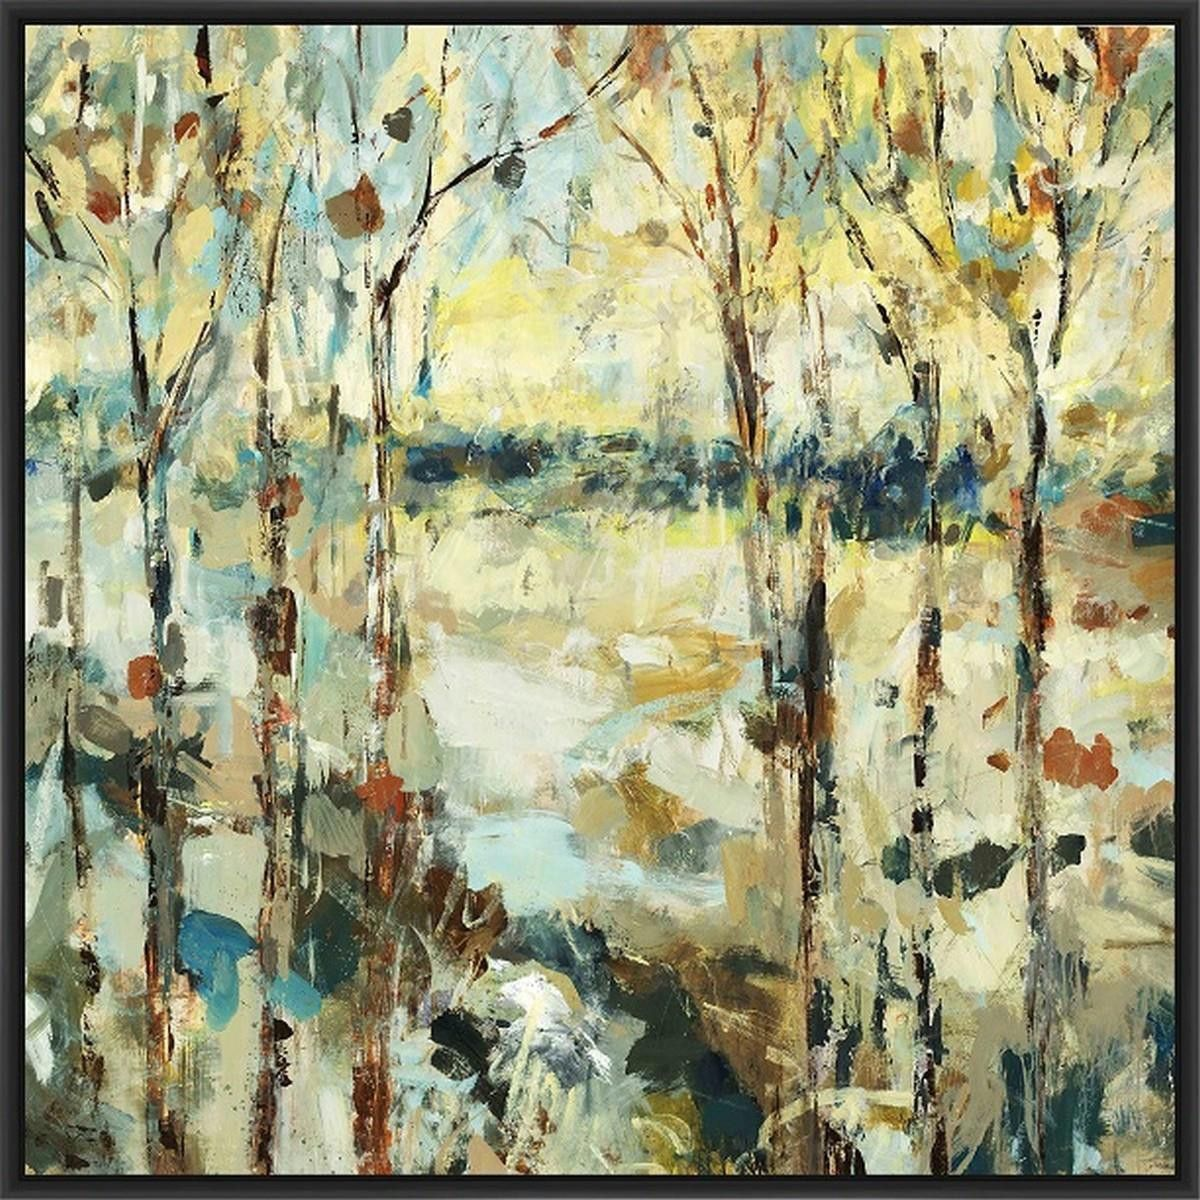 WILD WALKS 28L X 28H Floater Framed Art Giclee Wrapped Canvas ...